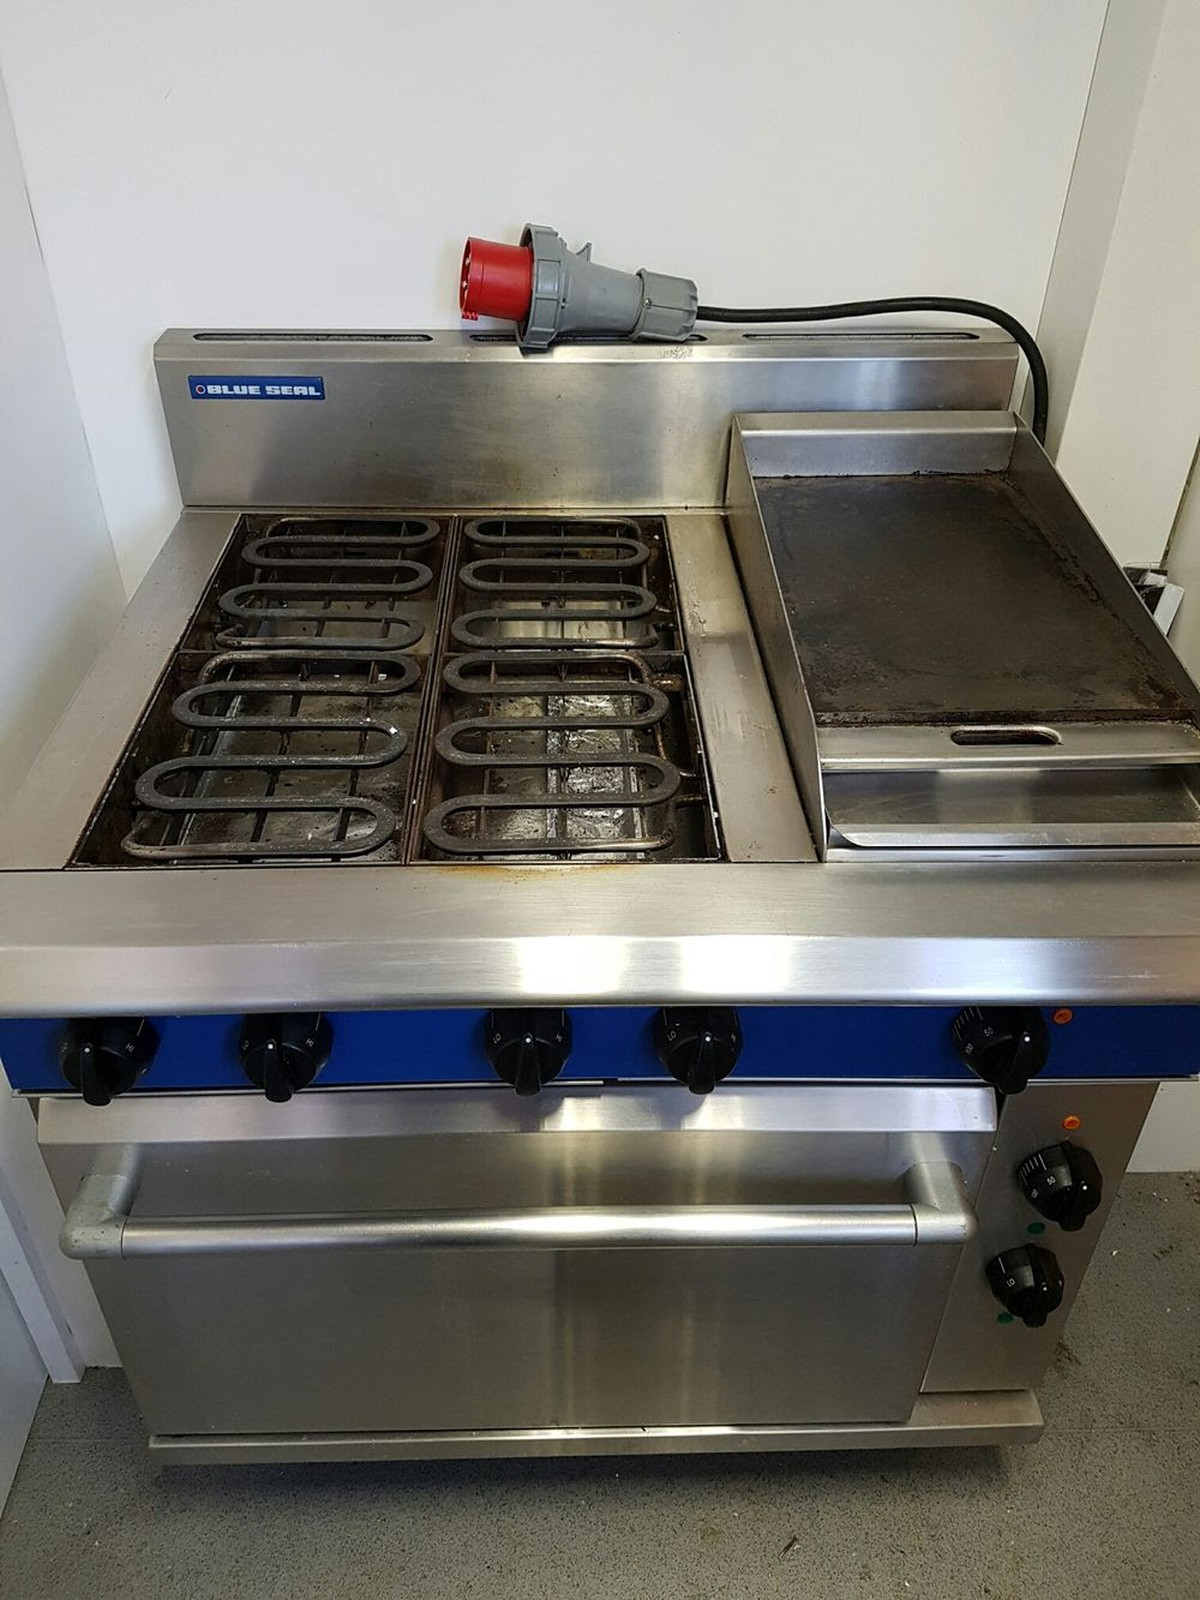 Secondhand Catering Equipment Electric Range Cooker